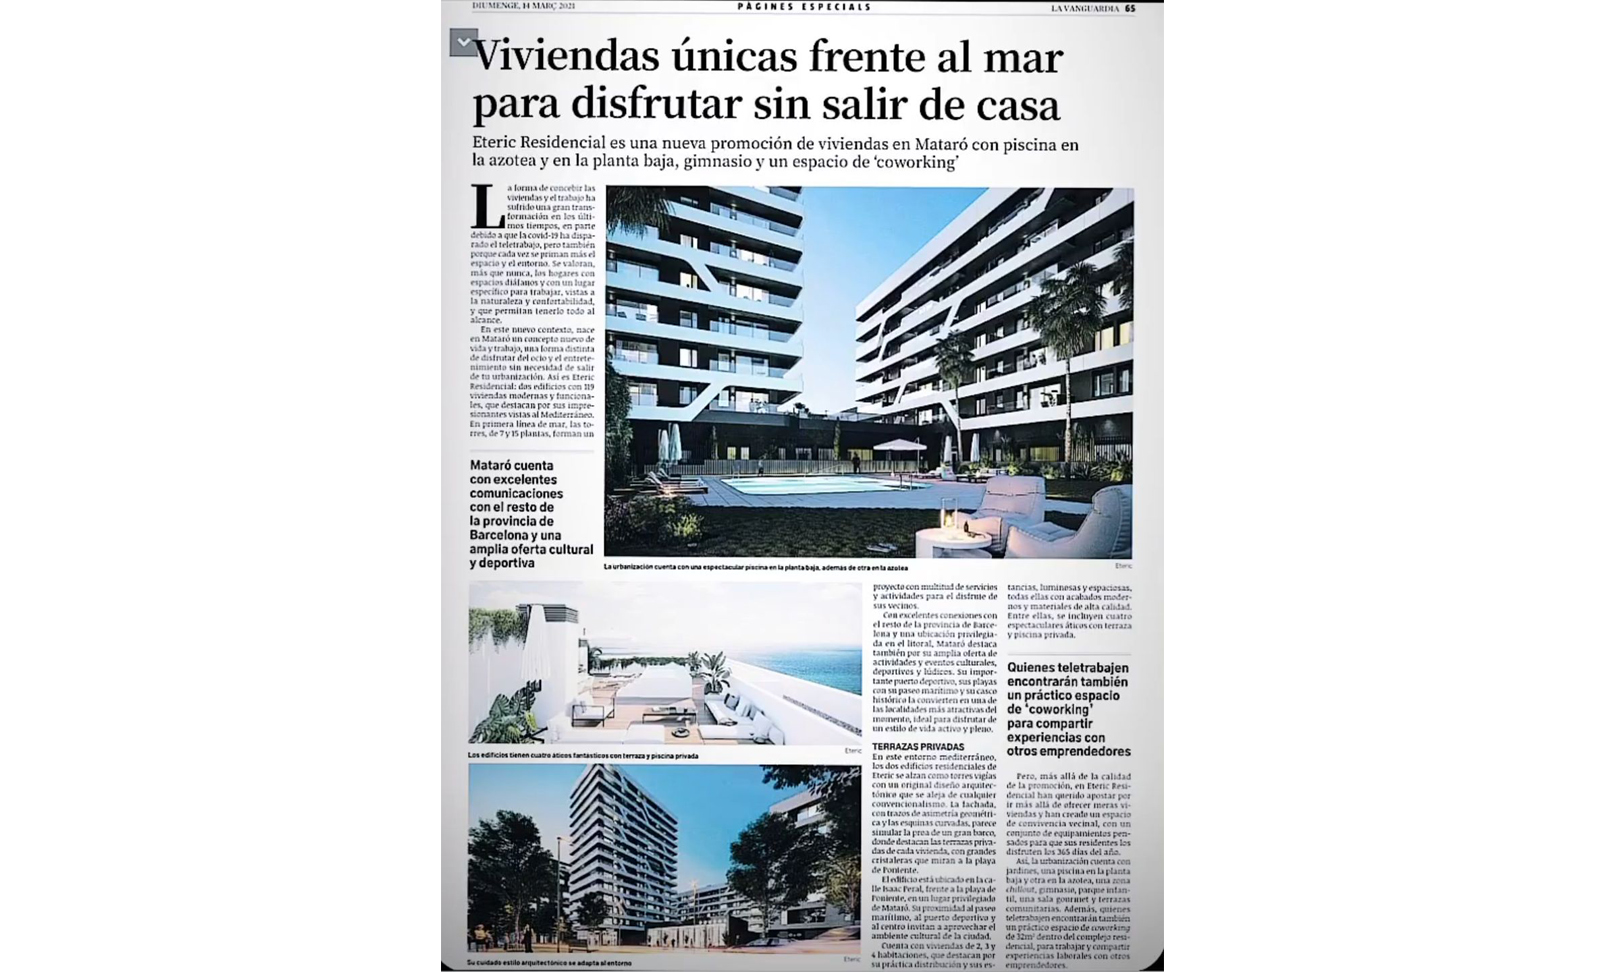 ETERIC RESIDENCIAL